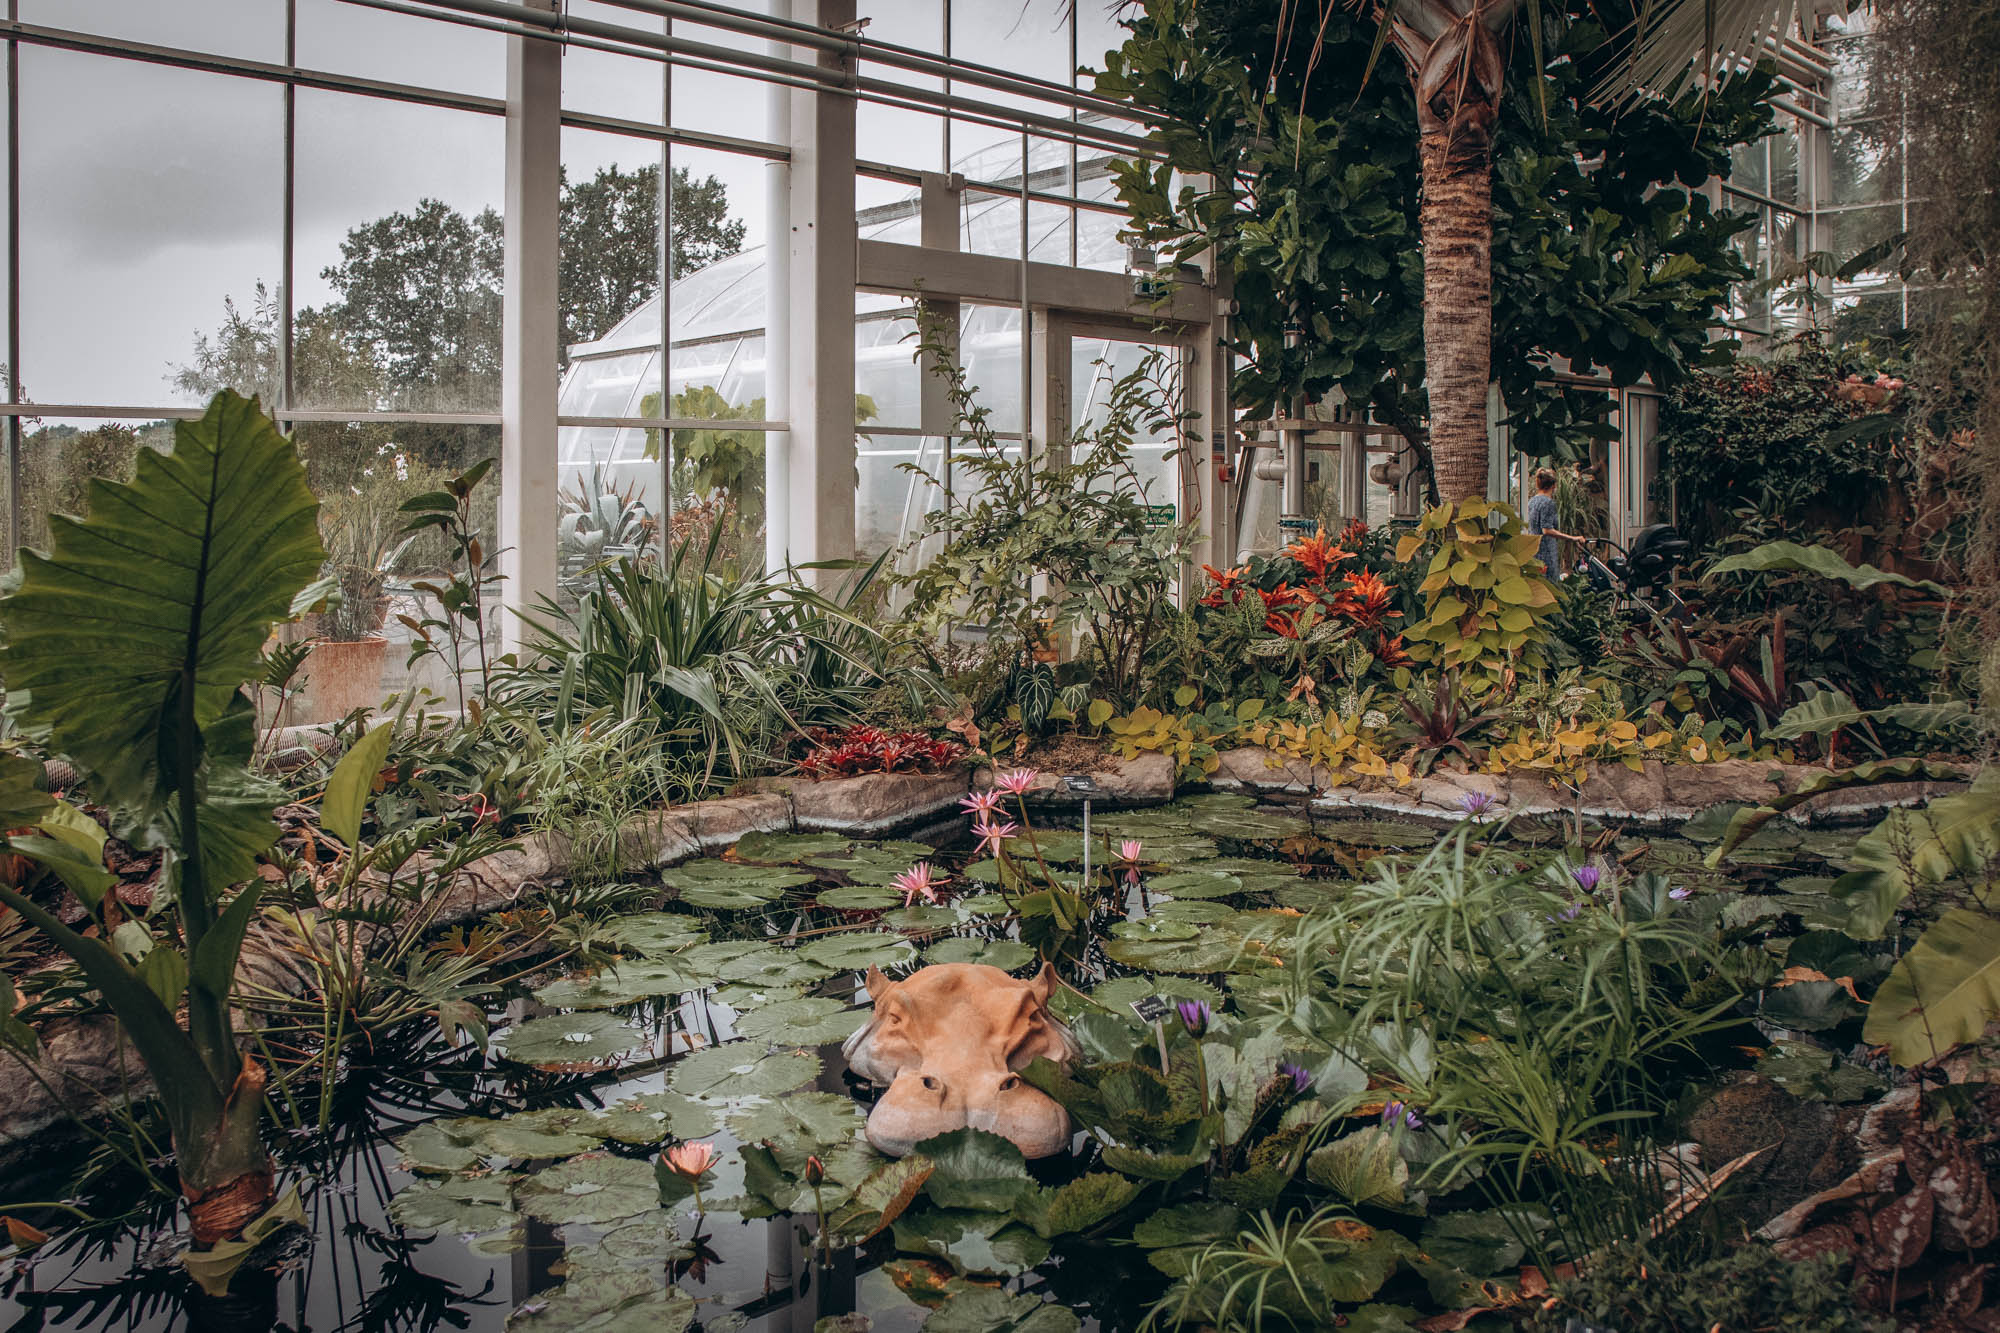 Tropical pool with water lily pads inside the Glasshouse at Wisley